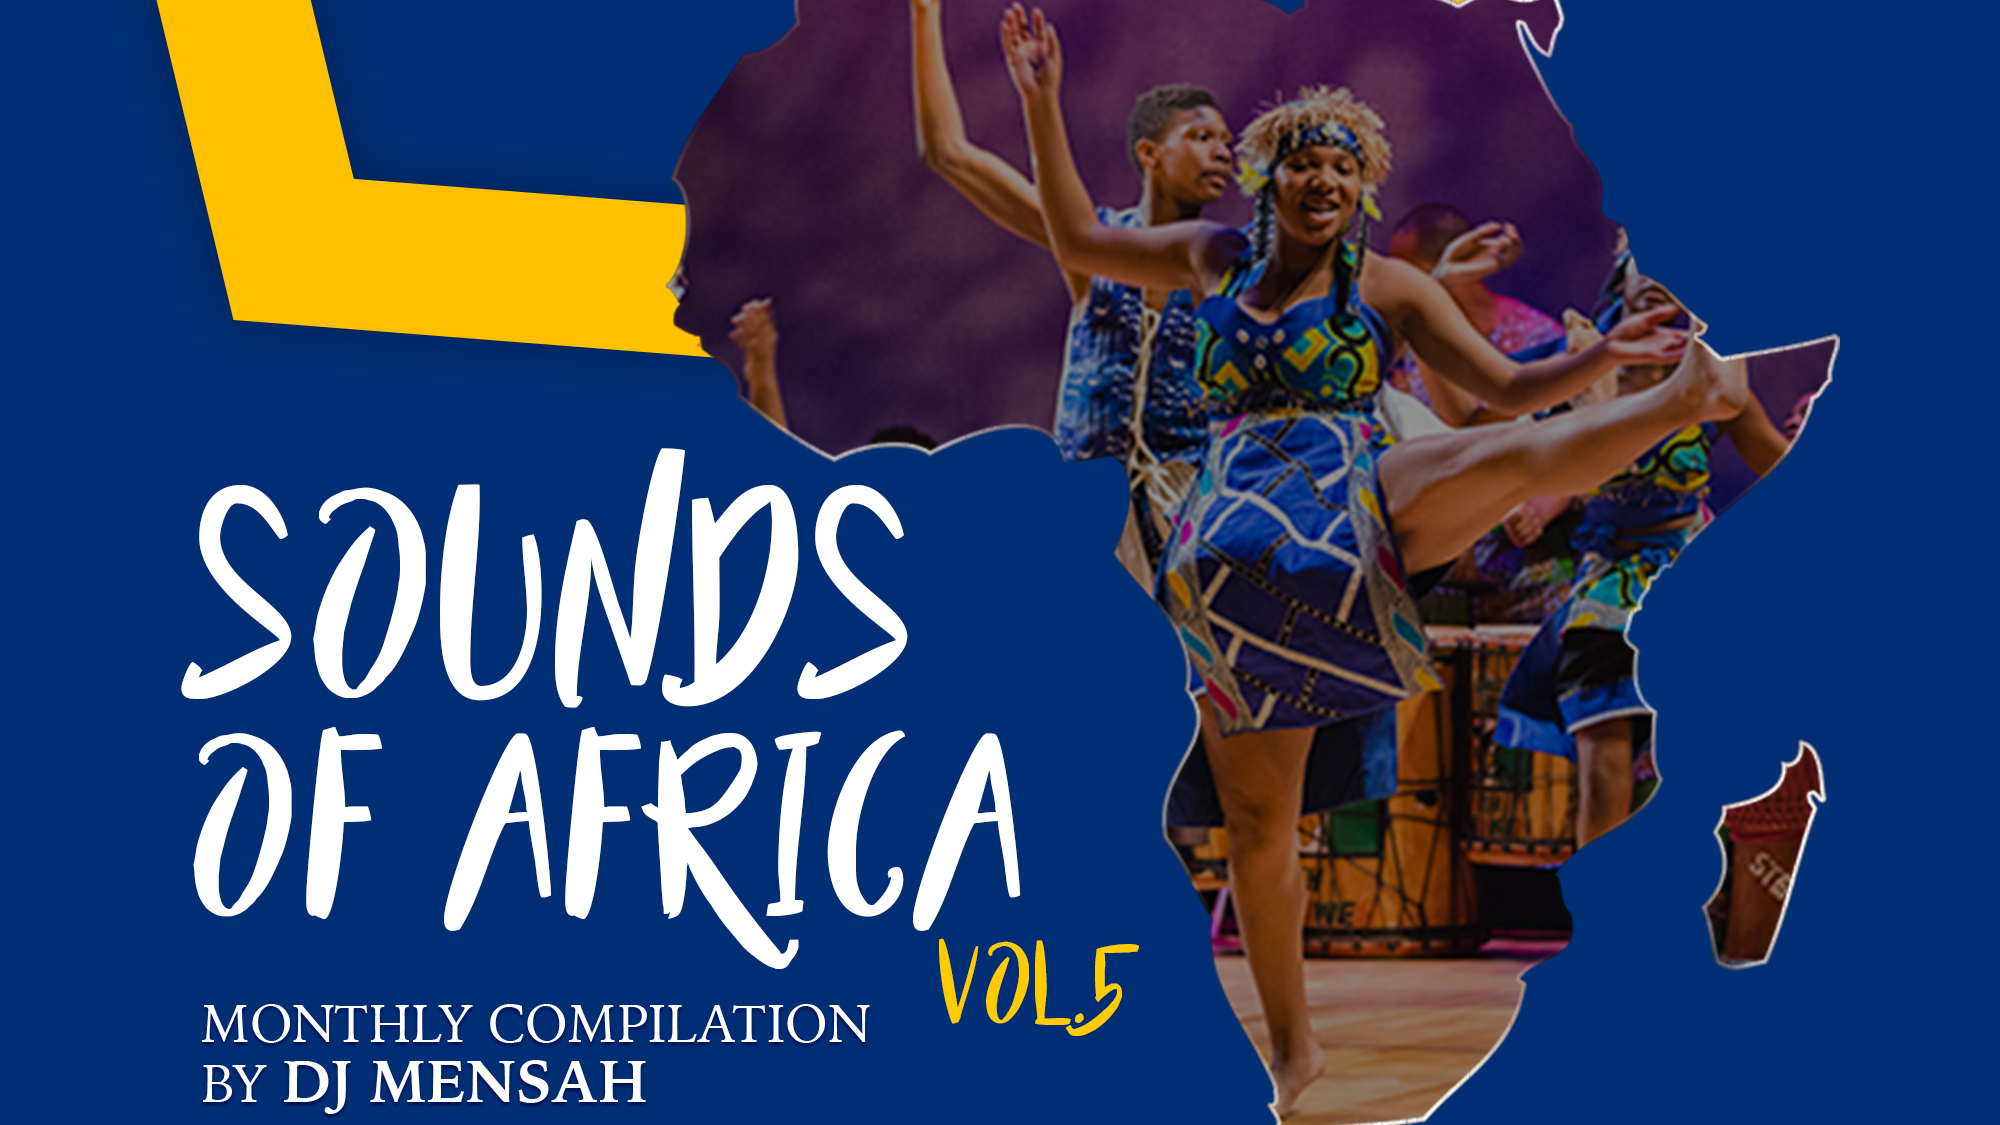 Dj Mensah out with monthly Sounds of Africa Vol.5 playlist